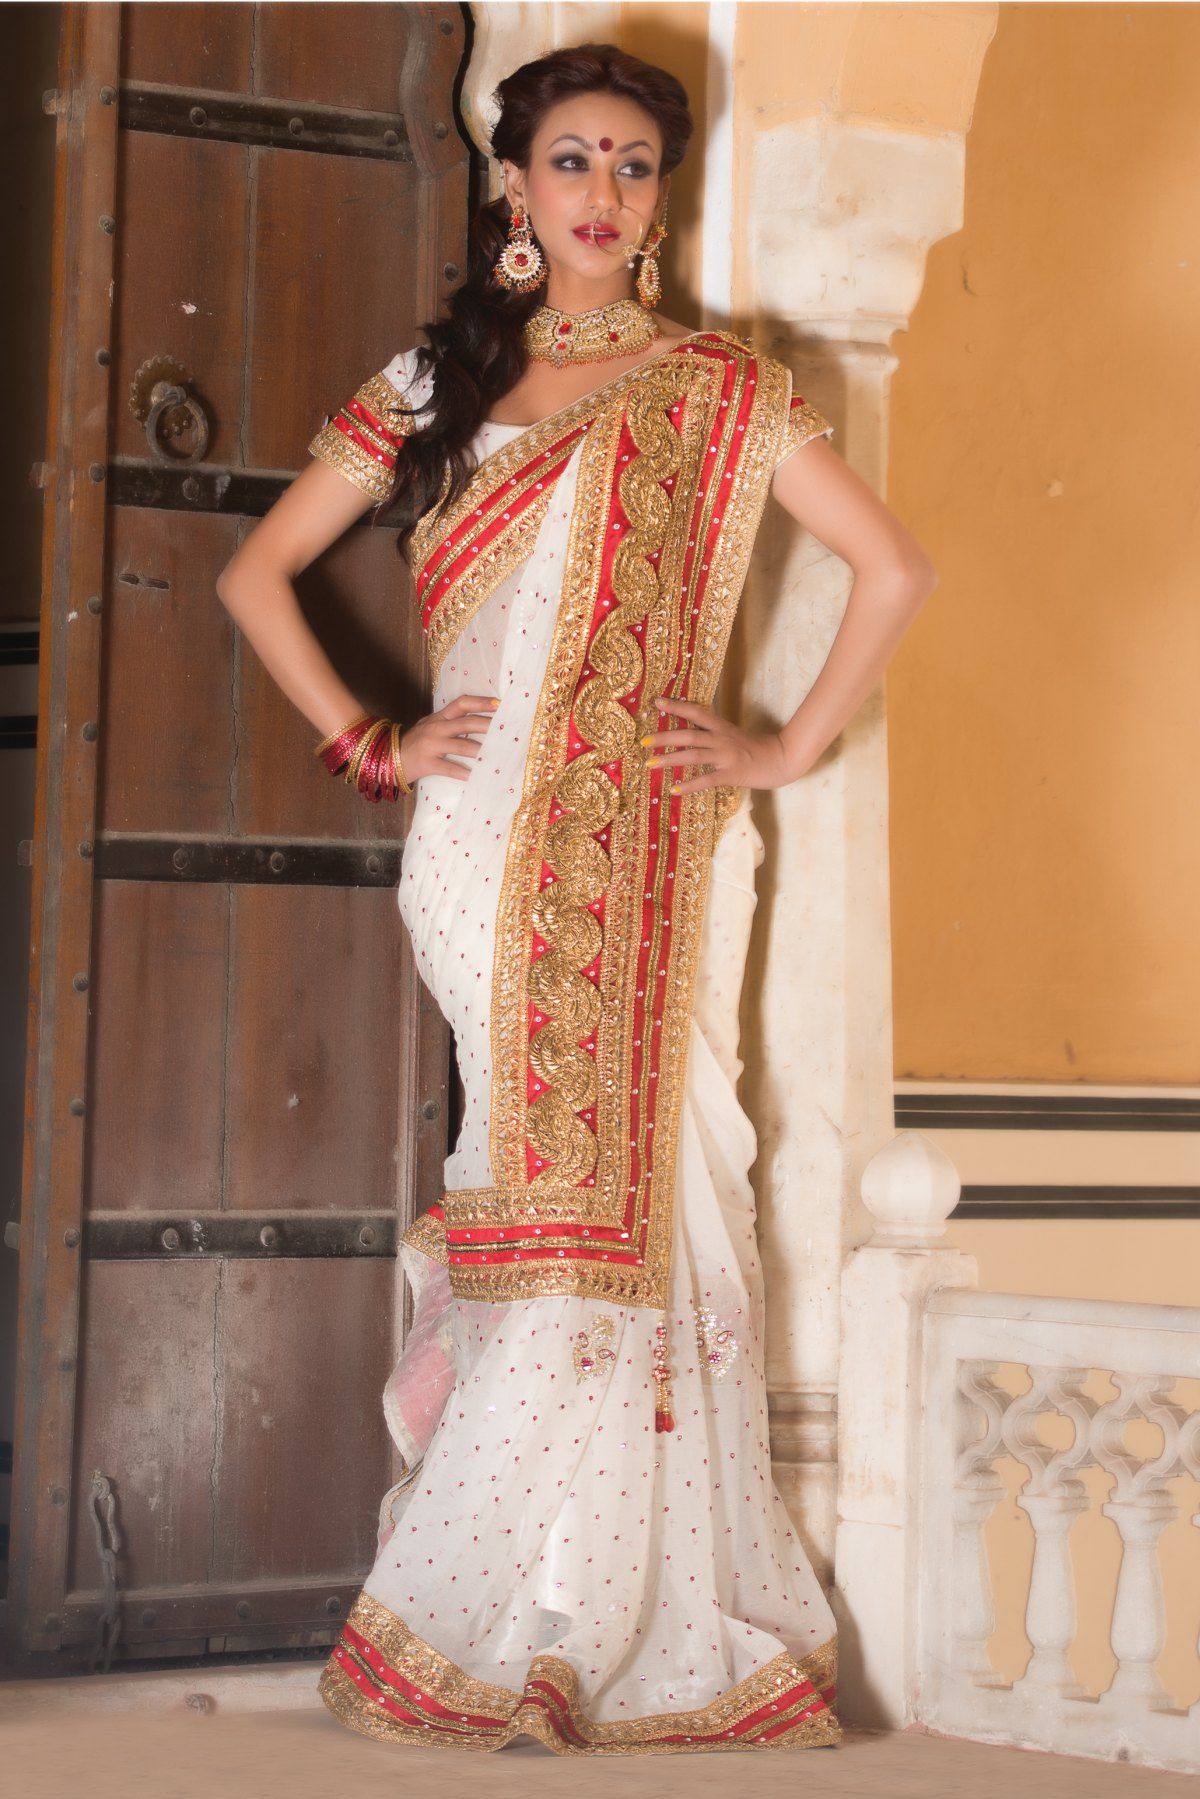 Stunning Bengali Bridal Wear Saree With Border Regular Price: Rs. 4,590.00 Buy Now @ 20.0% Off ...